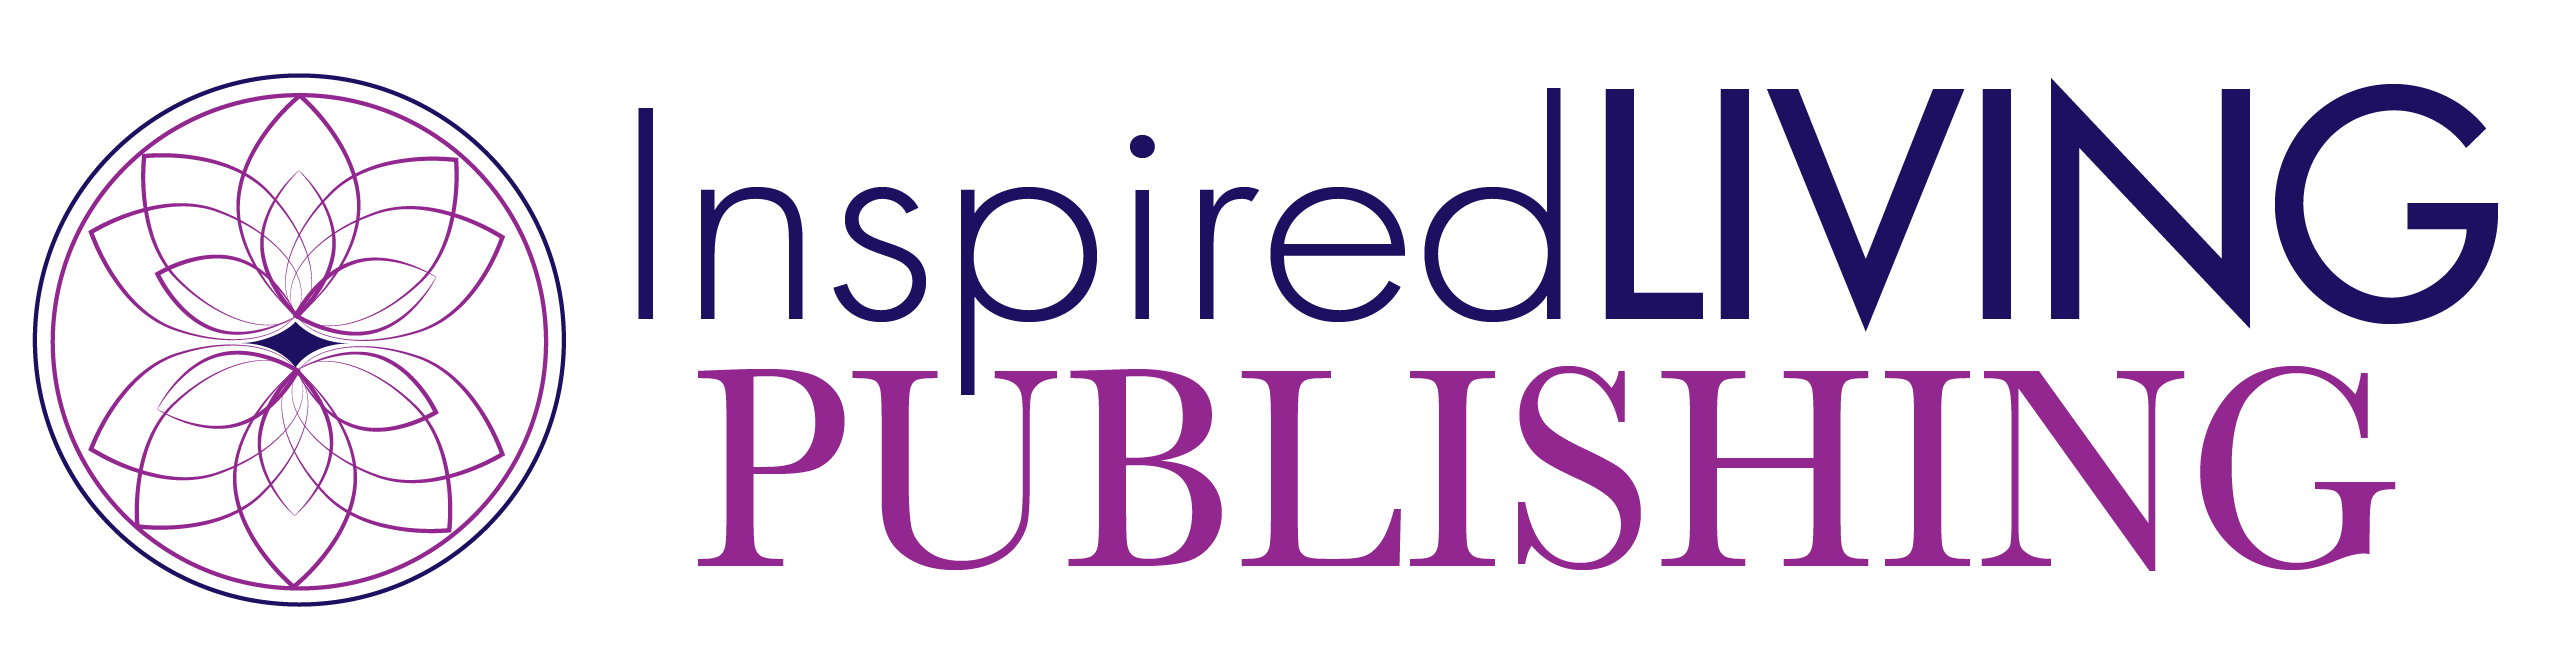 Inspired Living Publishing